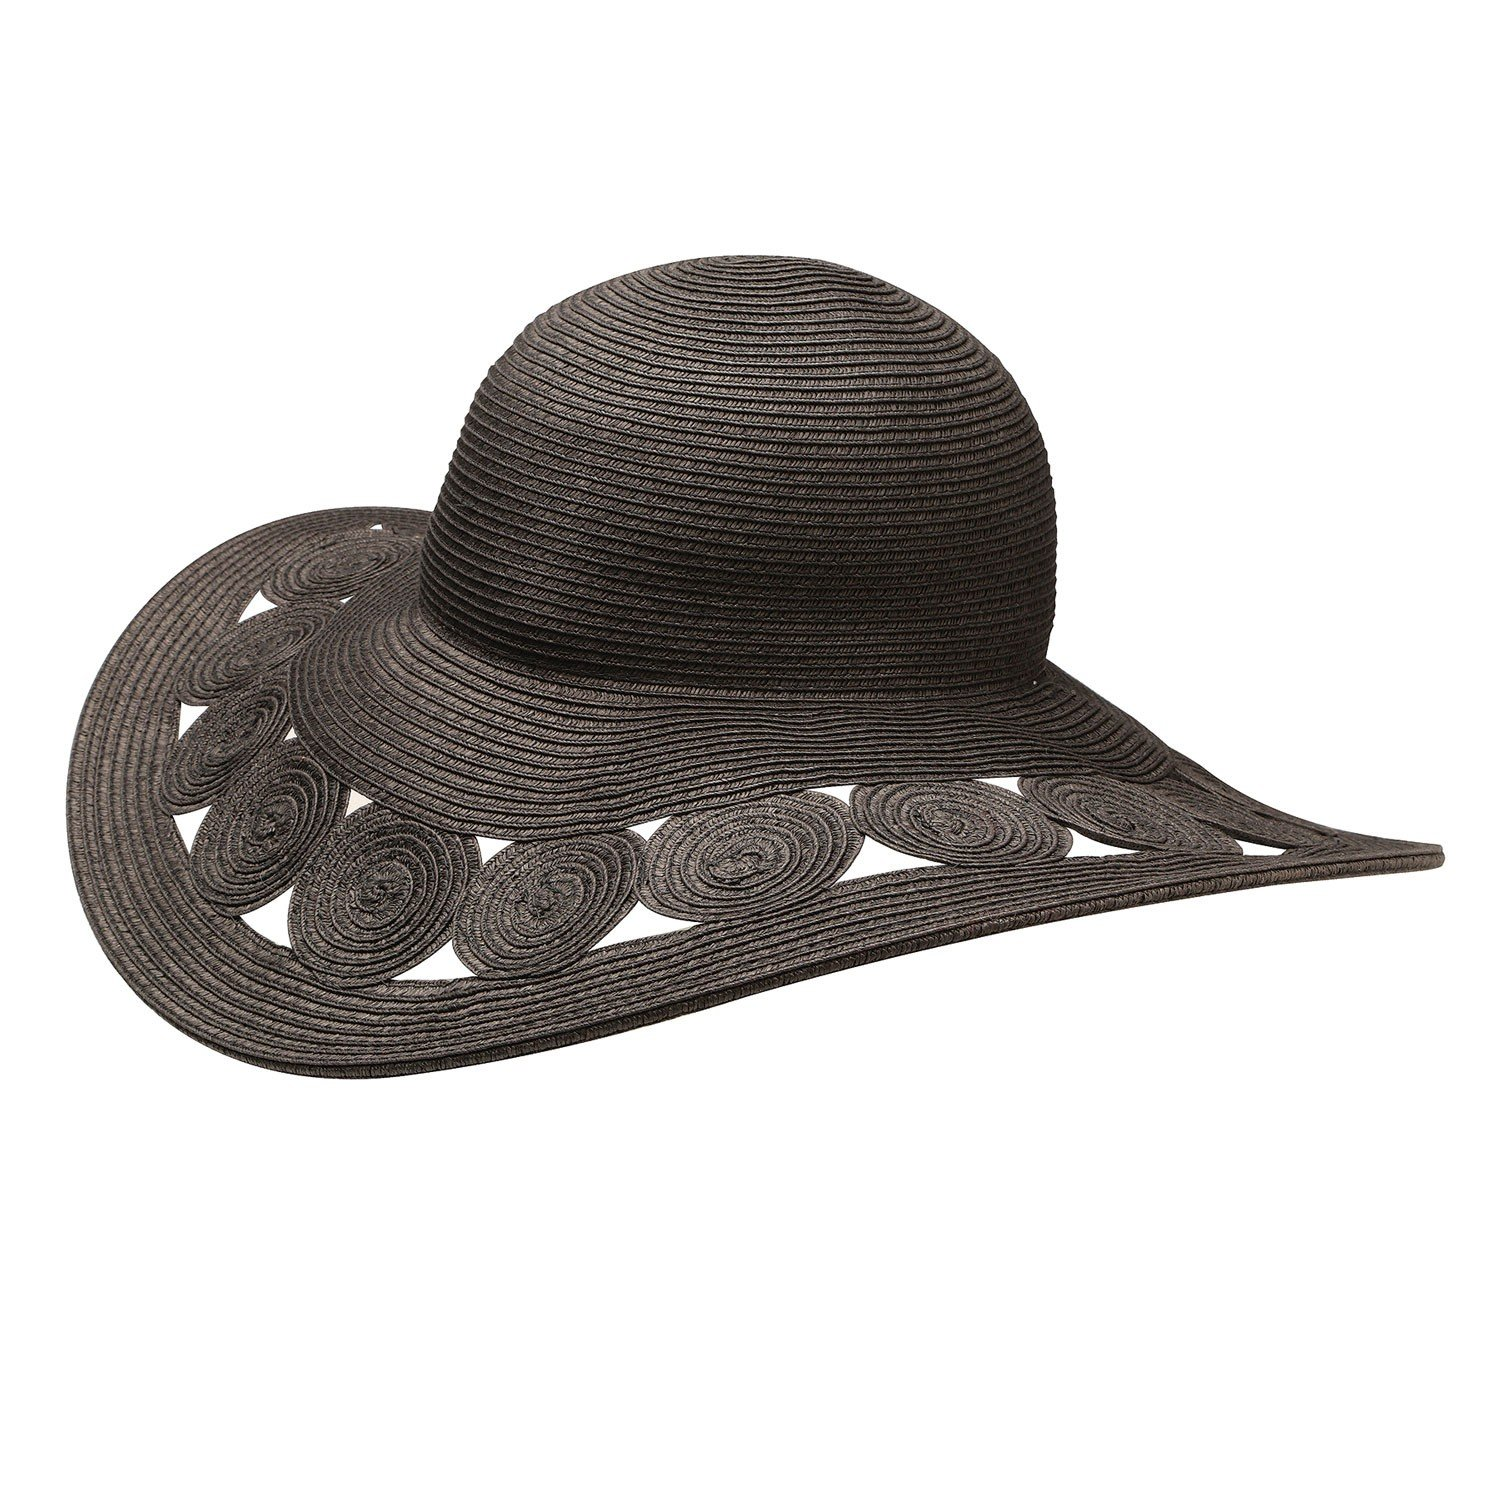 Jeanne Simmons Accessories Woman s Hat -Black Deep Brim Paper Braid Sun Hat  at Amazon Women s Clothing store  eebf64702b1